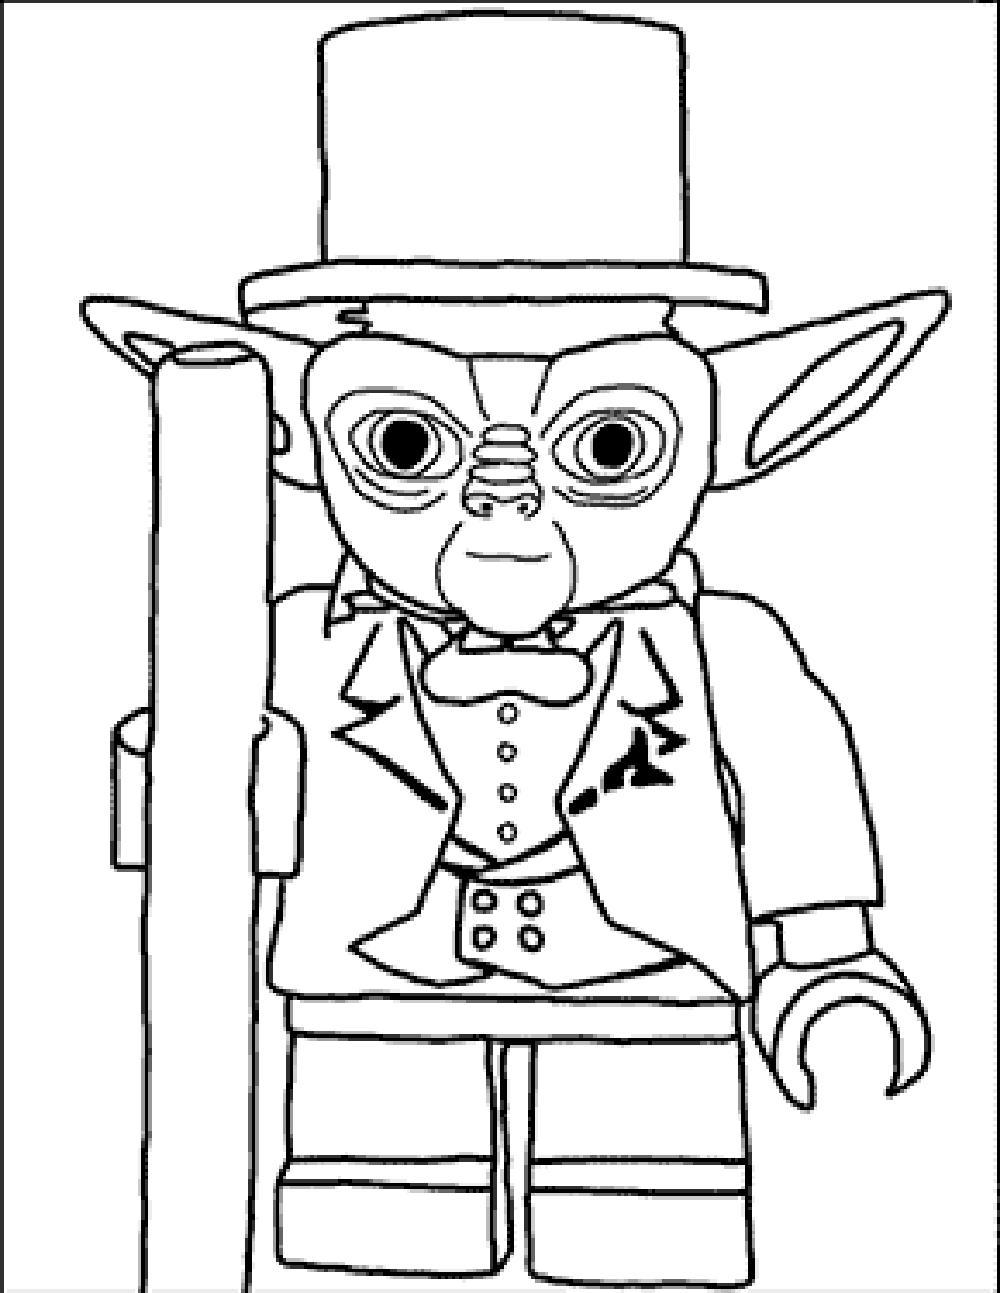 printable lego star wars coloring pages lego star wars clone wars coloring pages printable star lego coloring pages wars printable